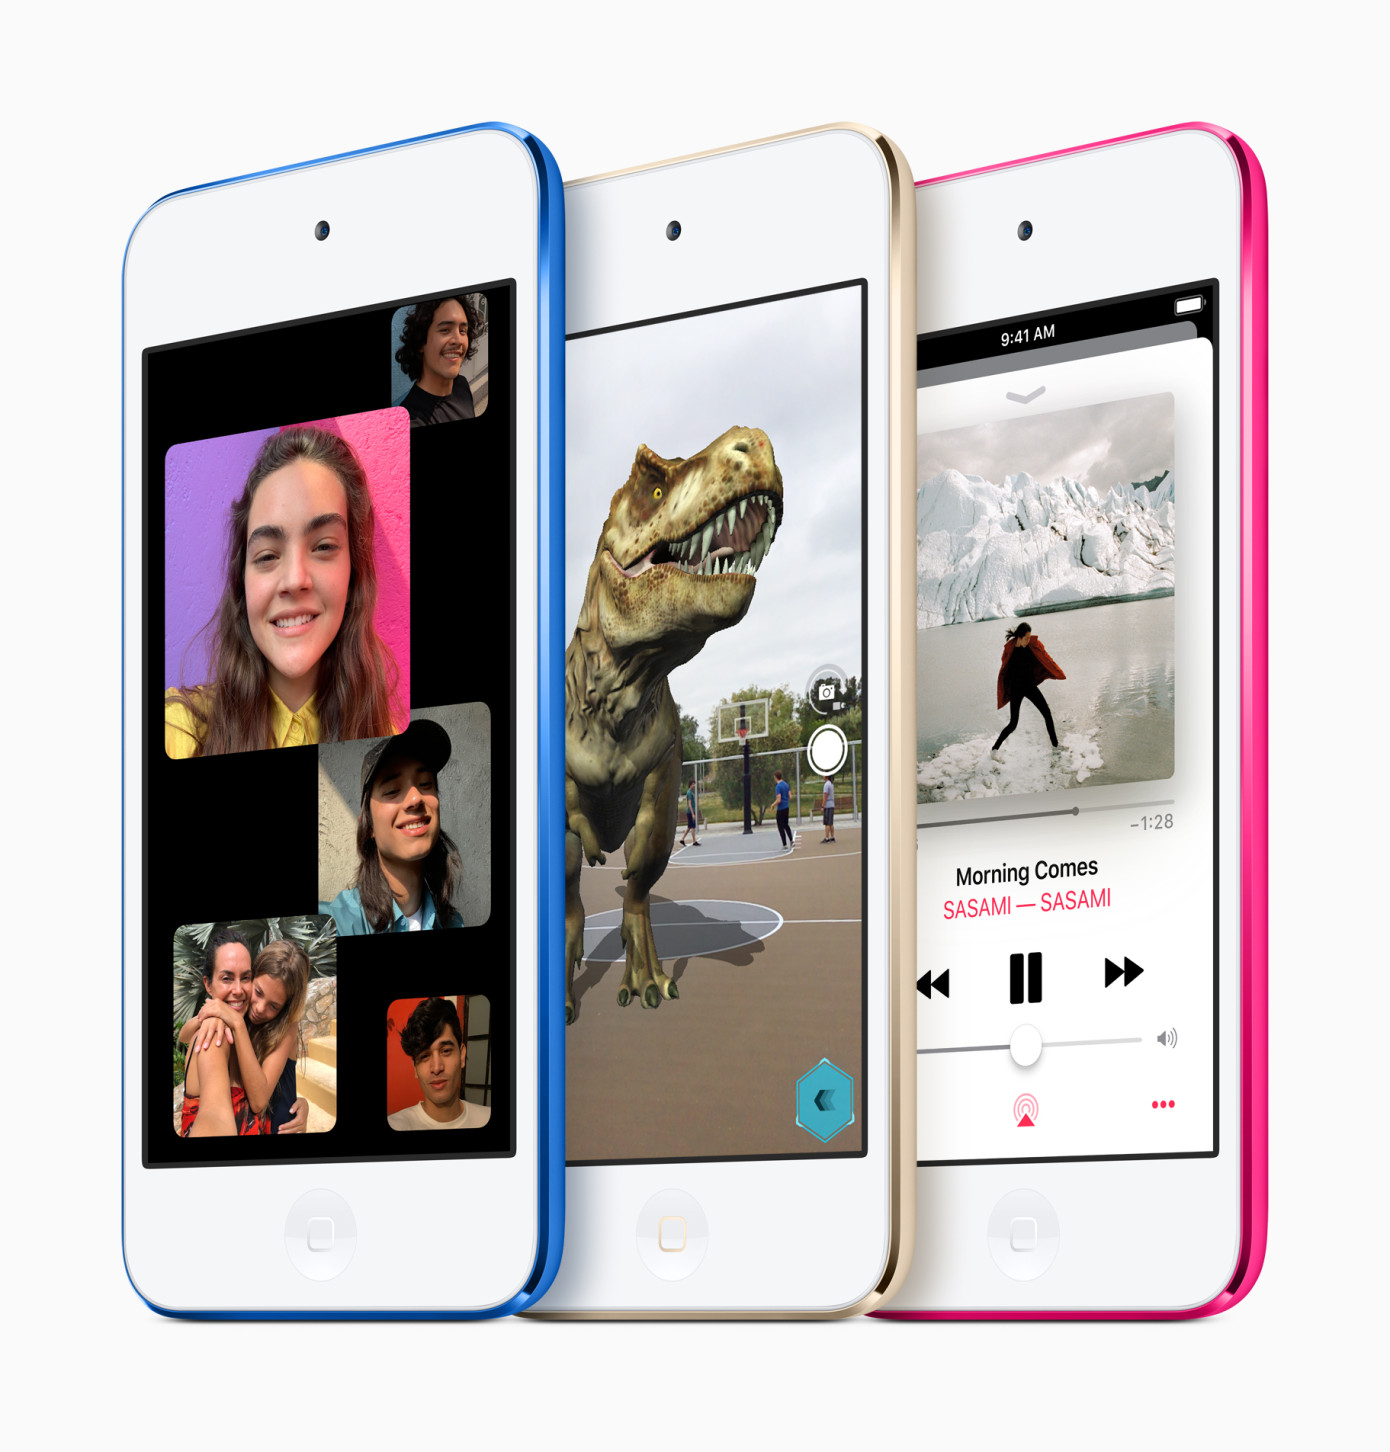 New iPod Touch is cheaper, faster and has more storage